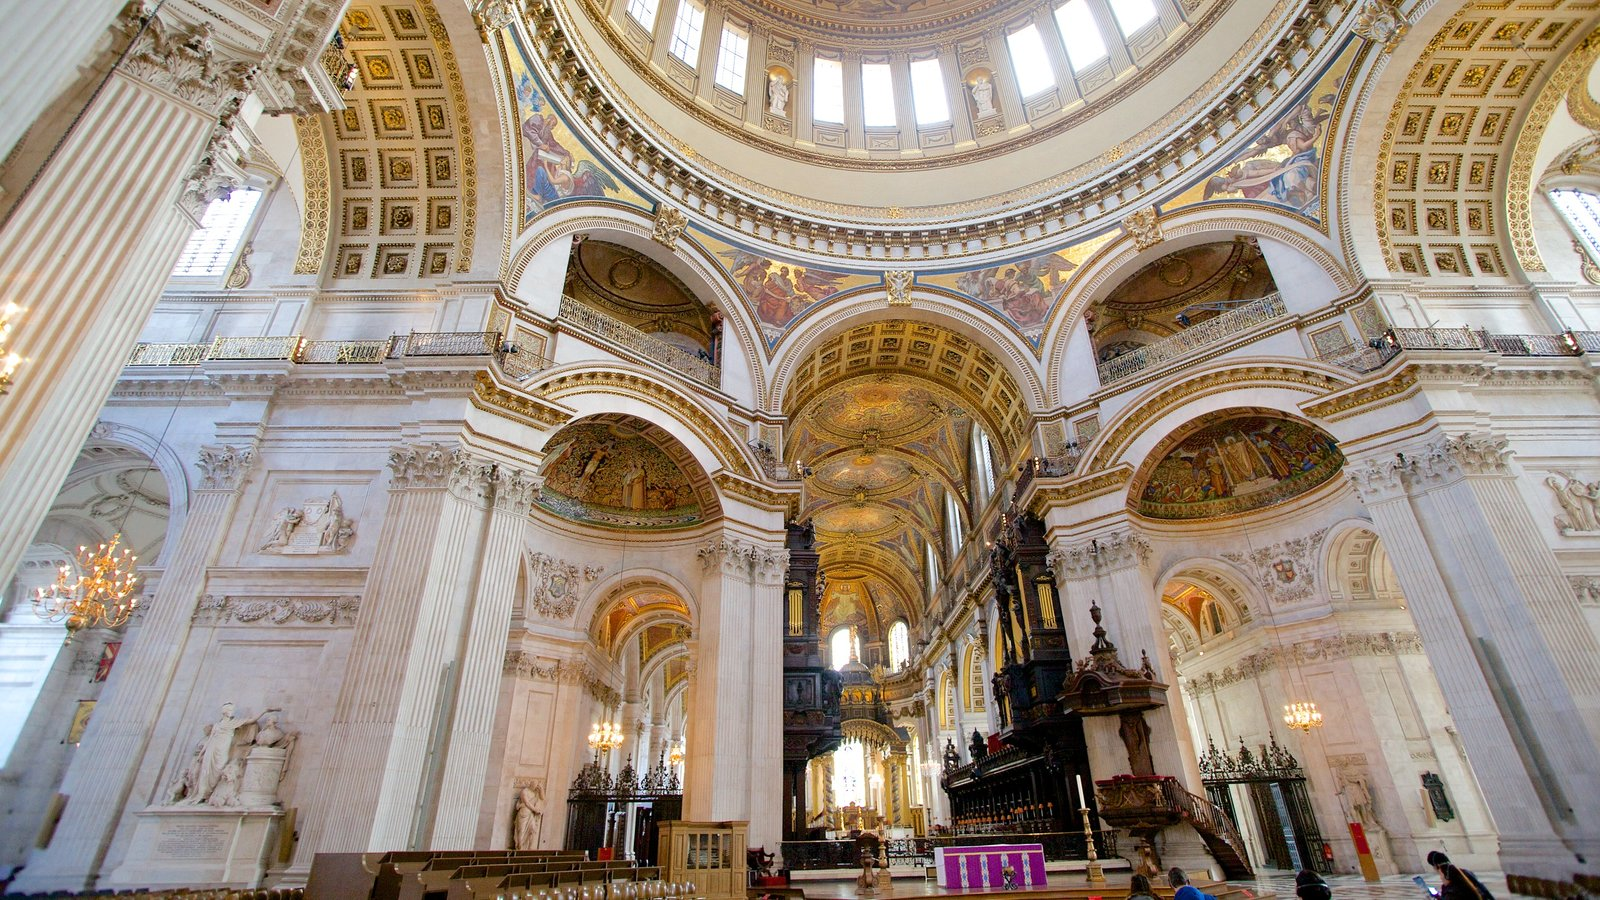 St. Paul\'s Cathedral which includes interior views, a church or cathedral and heritage architecture